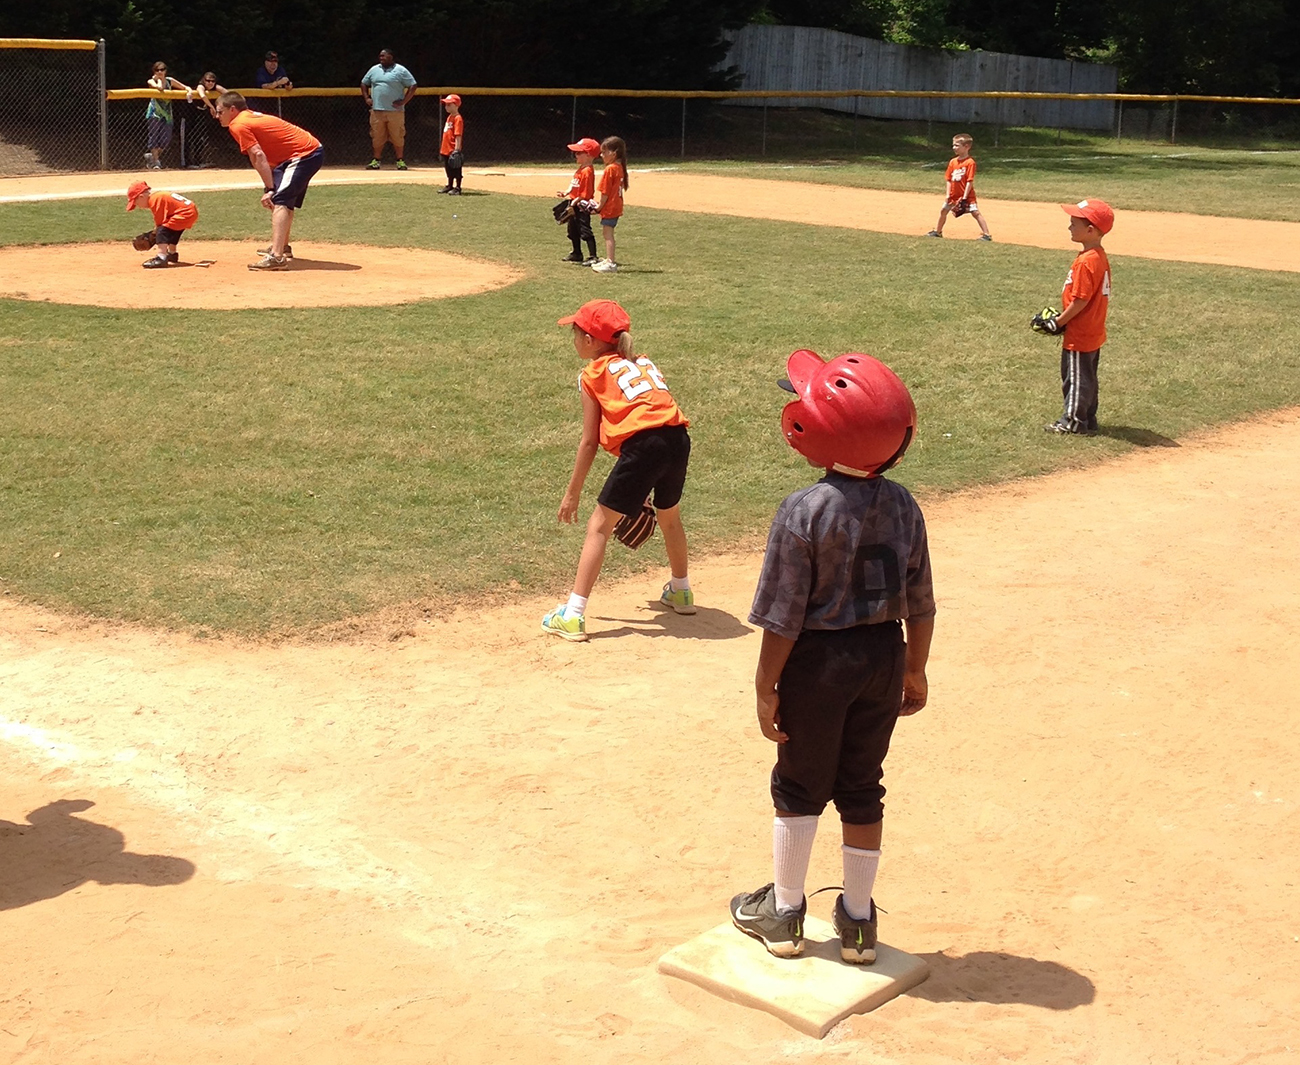 5 things you learn at a T-ball game